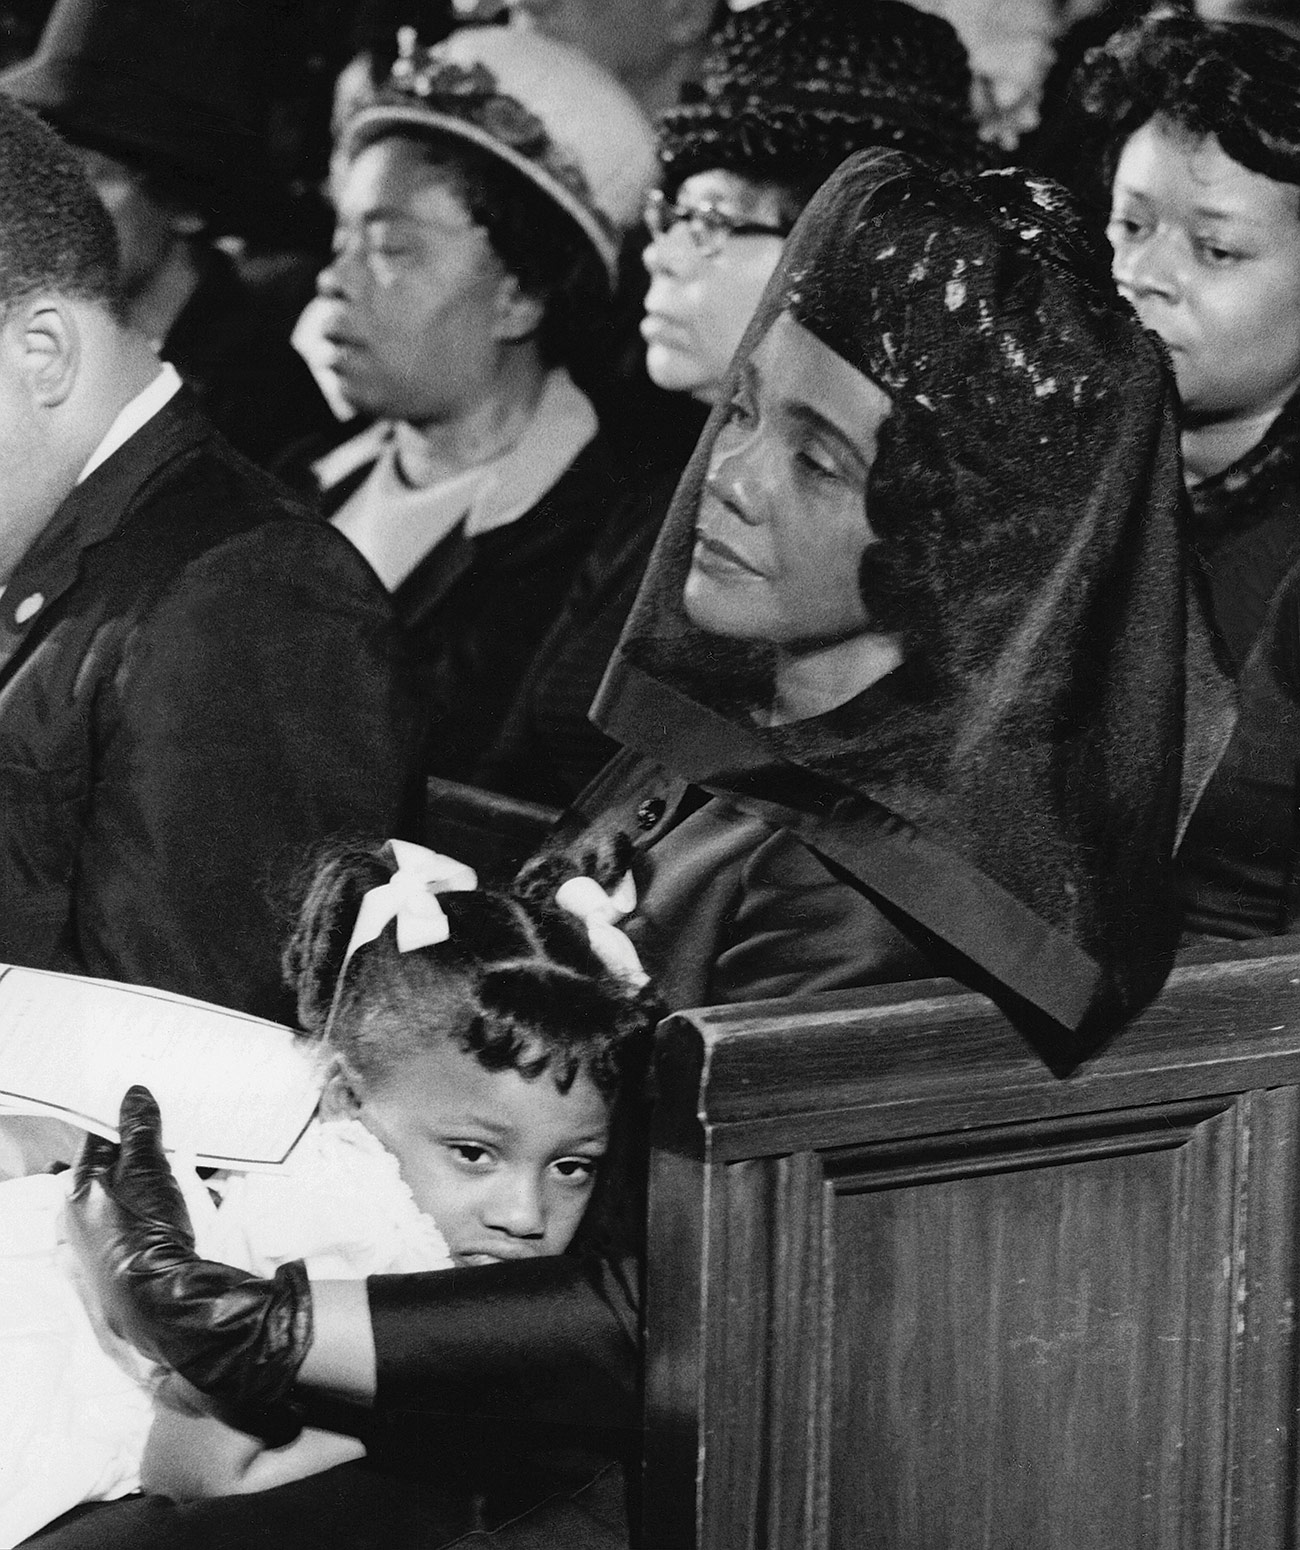 King wears a veil over her face as she sits in a pew holding her daughter, who wears white with white ribbons in her hair.